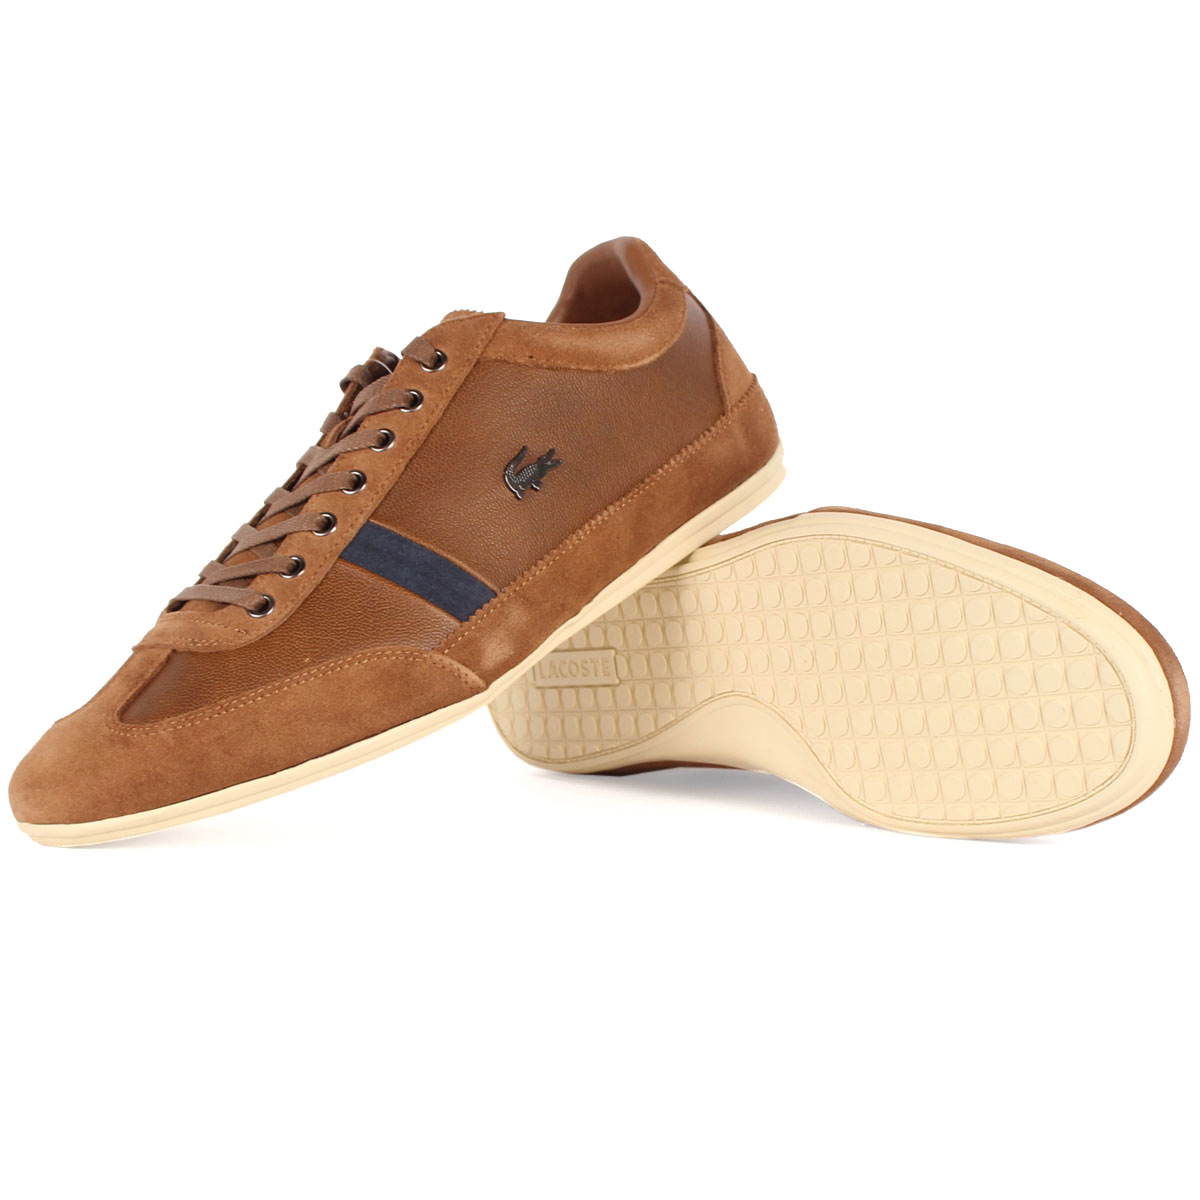 9dabe4d7443df Lacoste - Mens Misano 22 Shoes In Tan